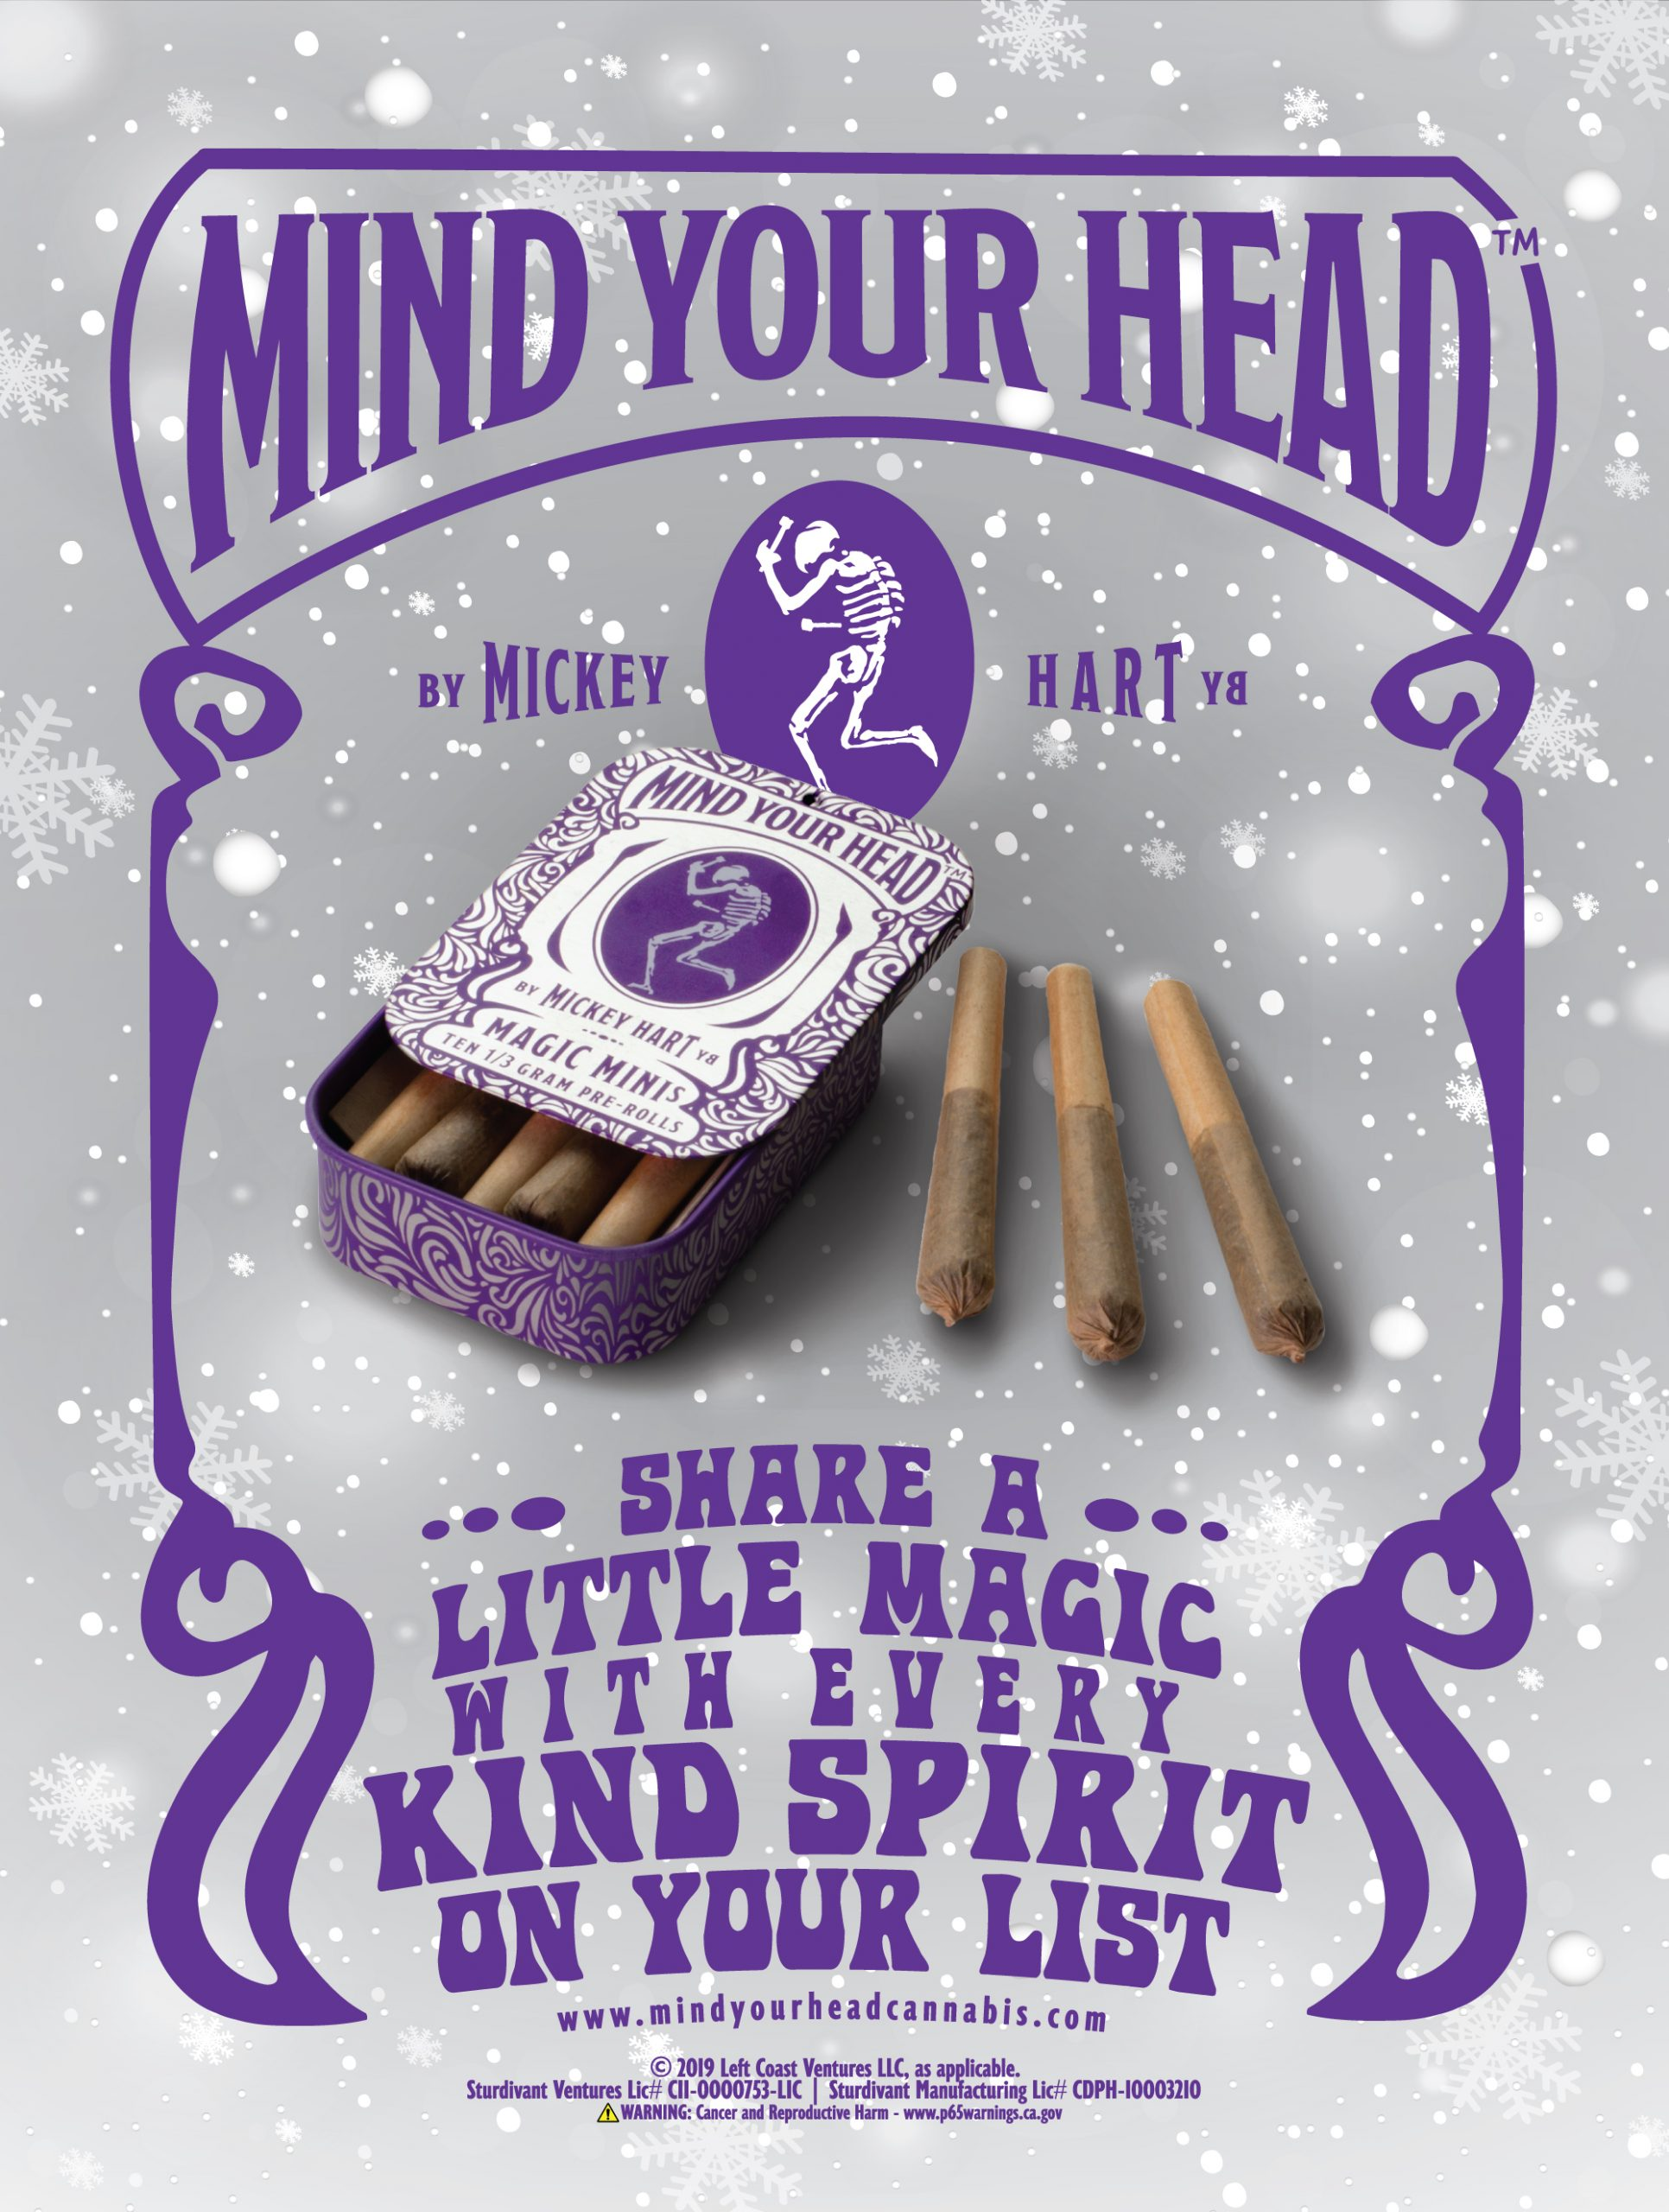 image of holiday print ad for Mind Your Head product